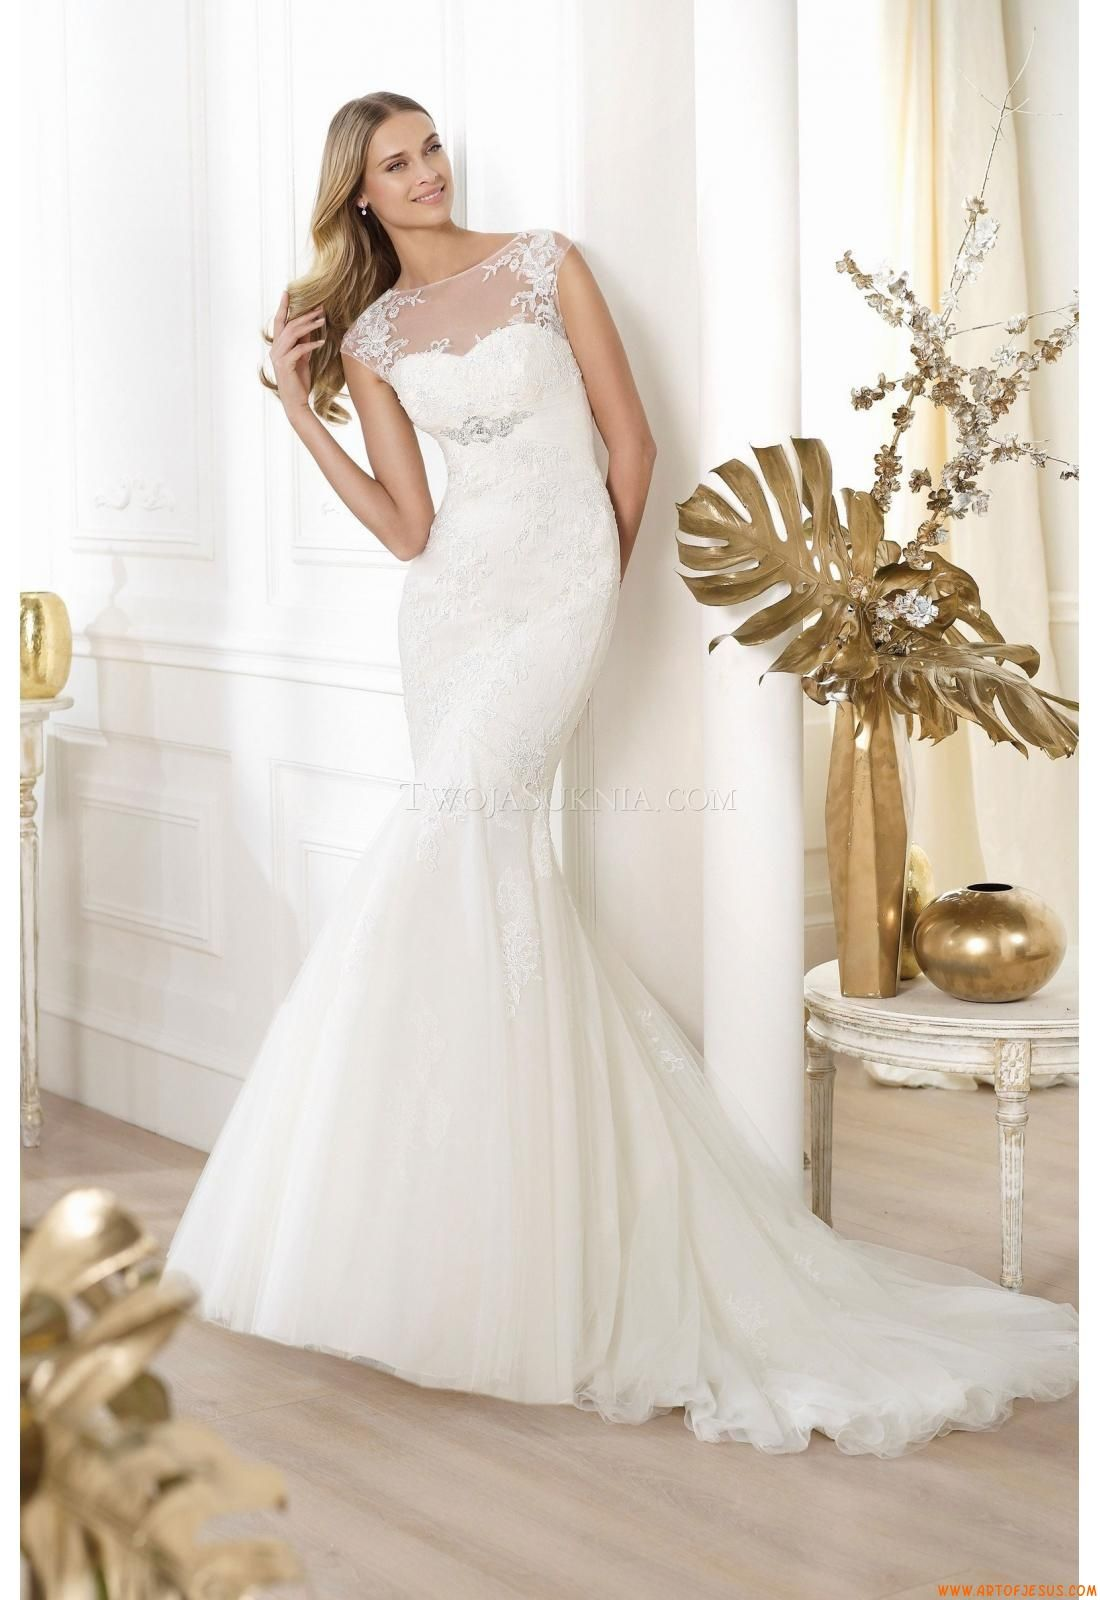 Brautkleider Pronovias Leonde 2014 | modest wedding dresses ...